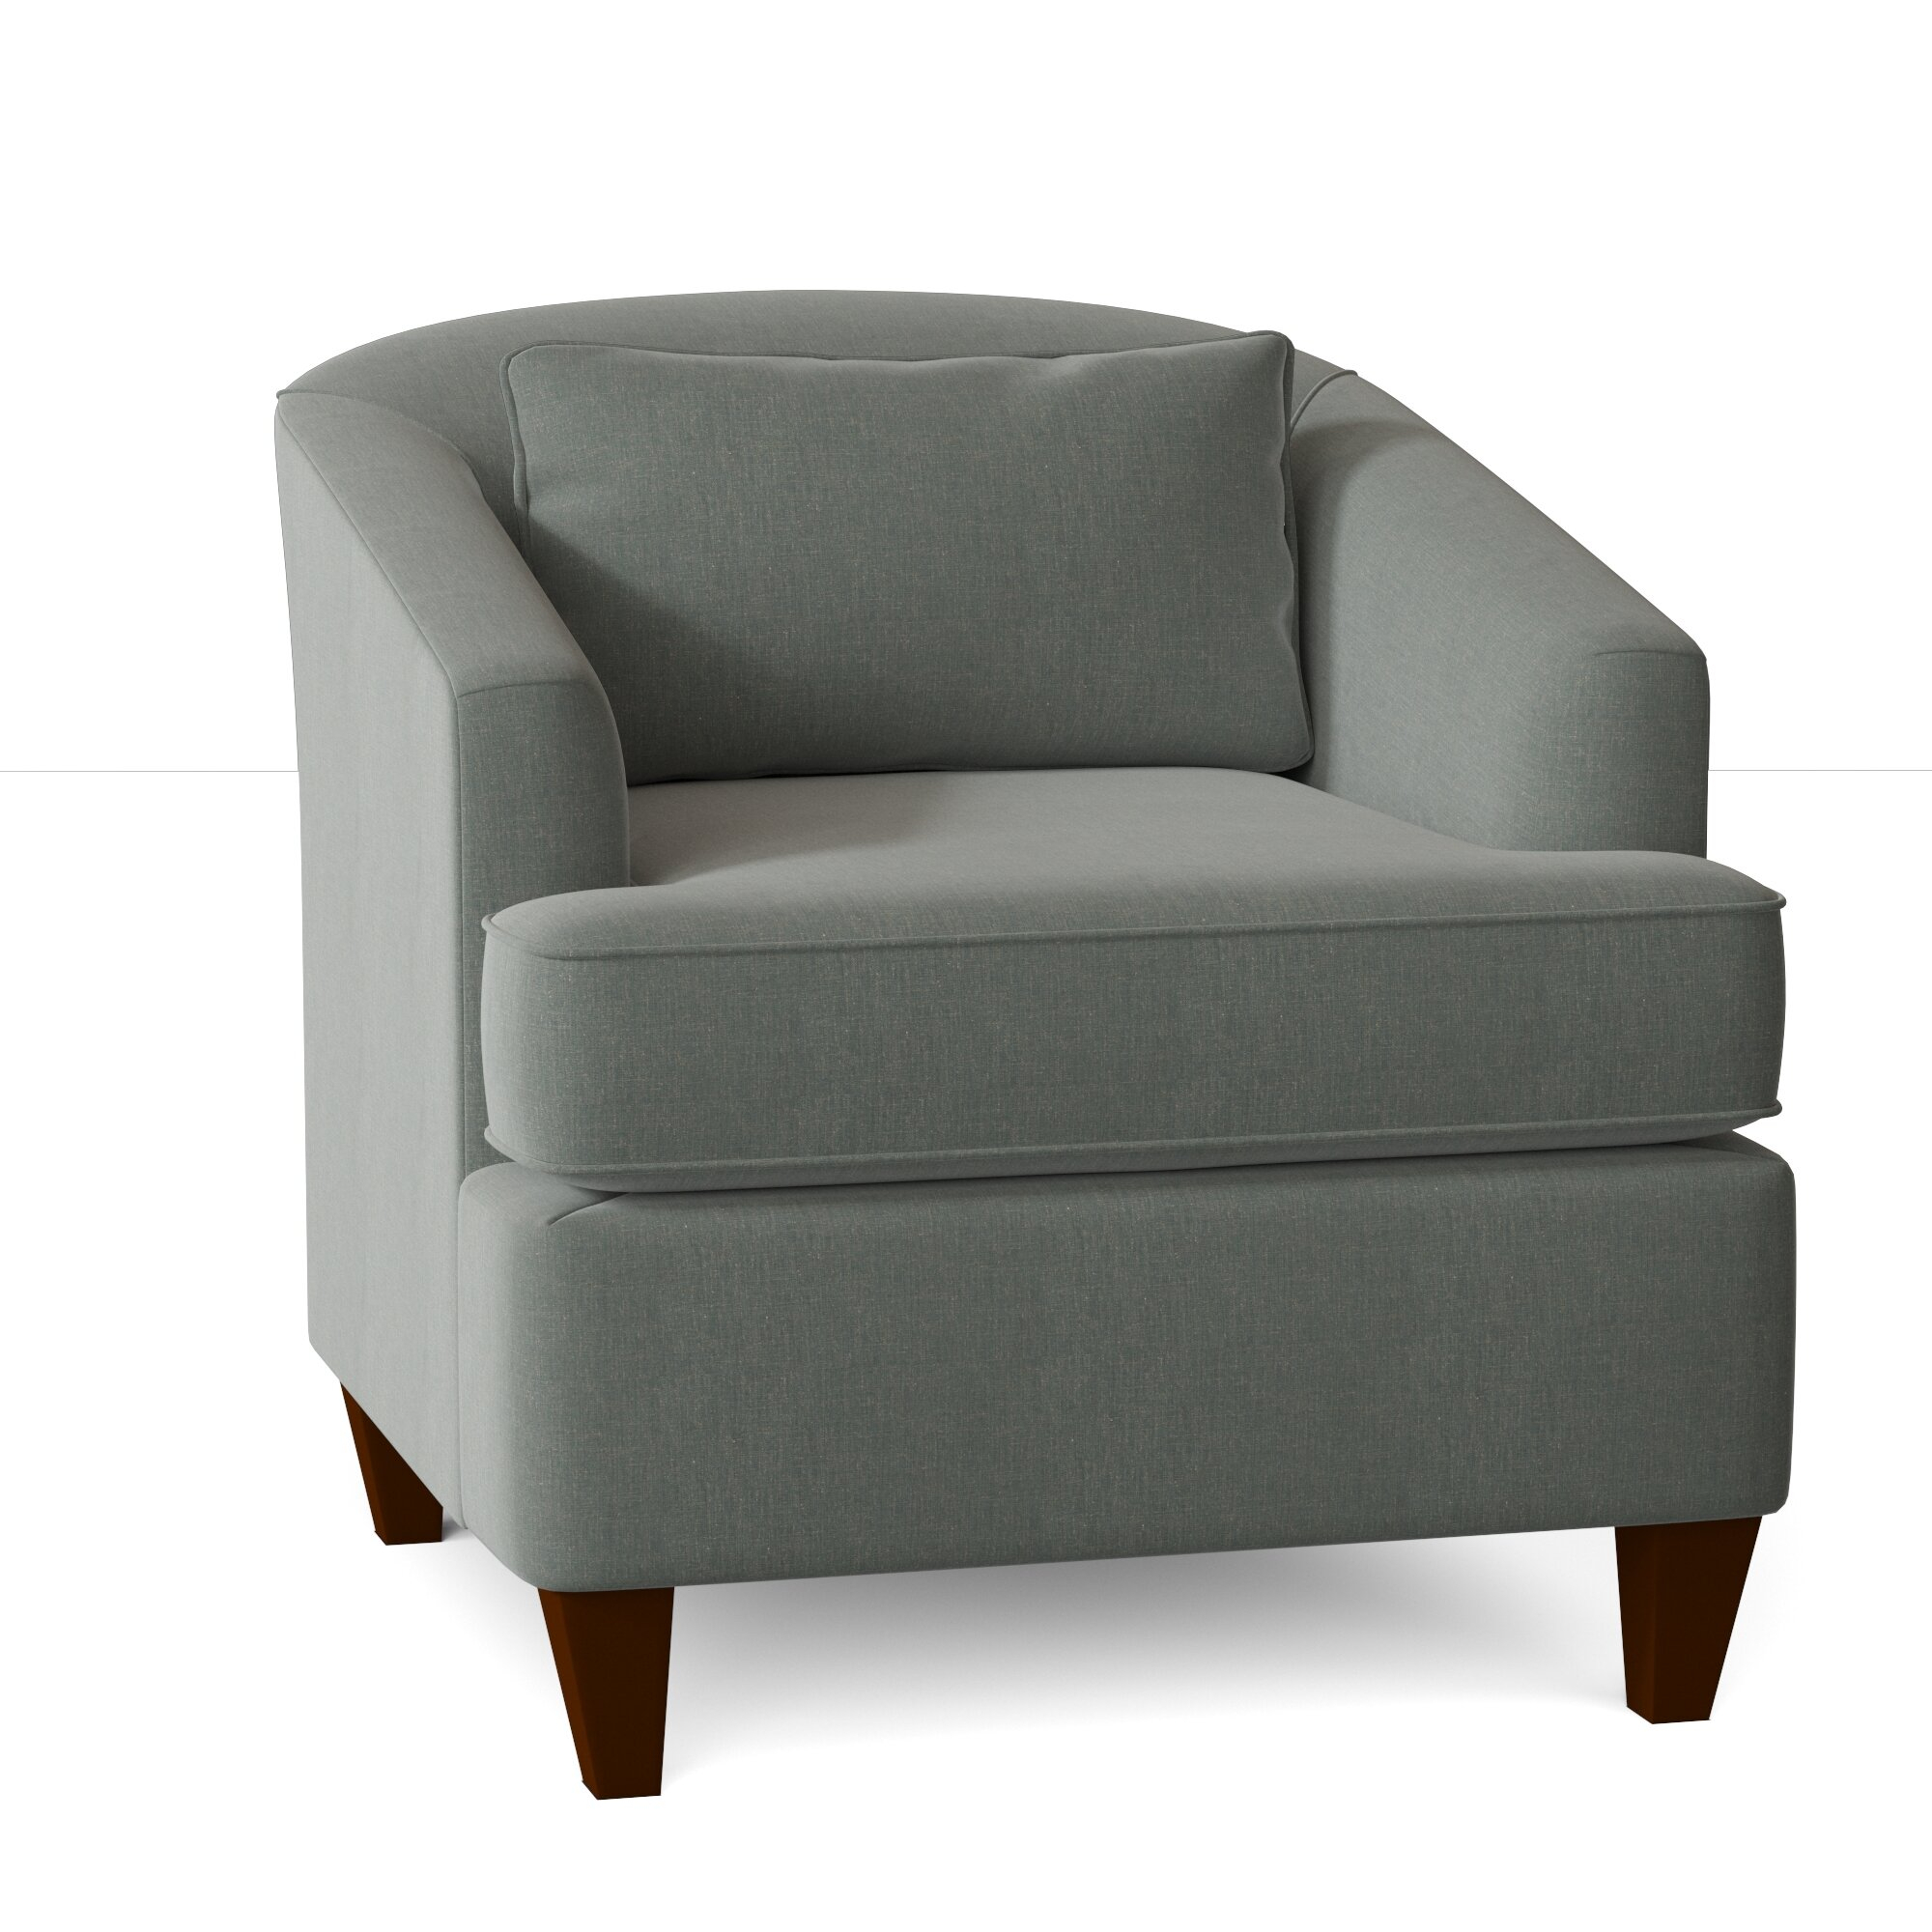 Evelyn Barrel Chair Pertaining To Filton Barrel Chairs (View 8 of 15)